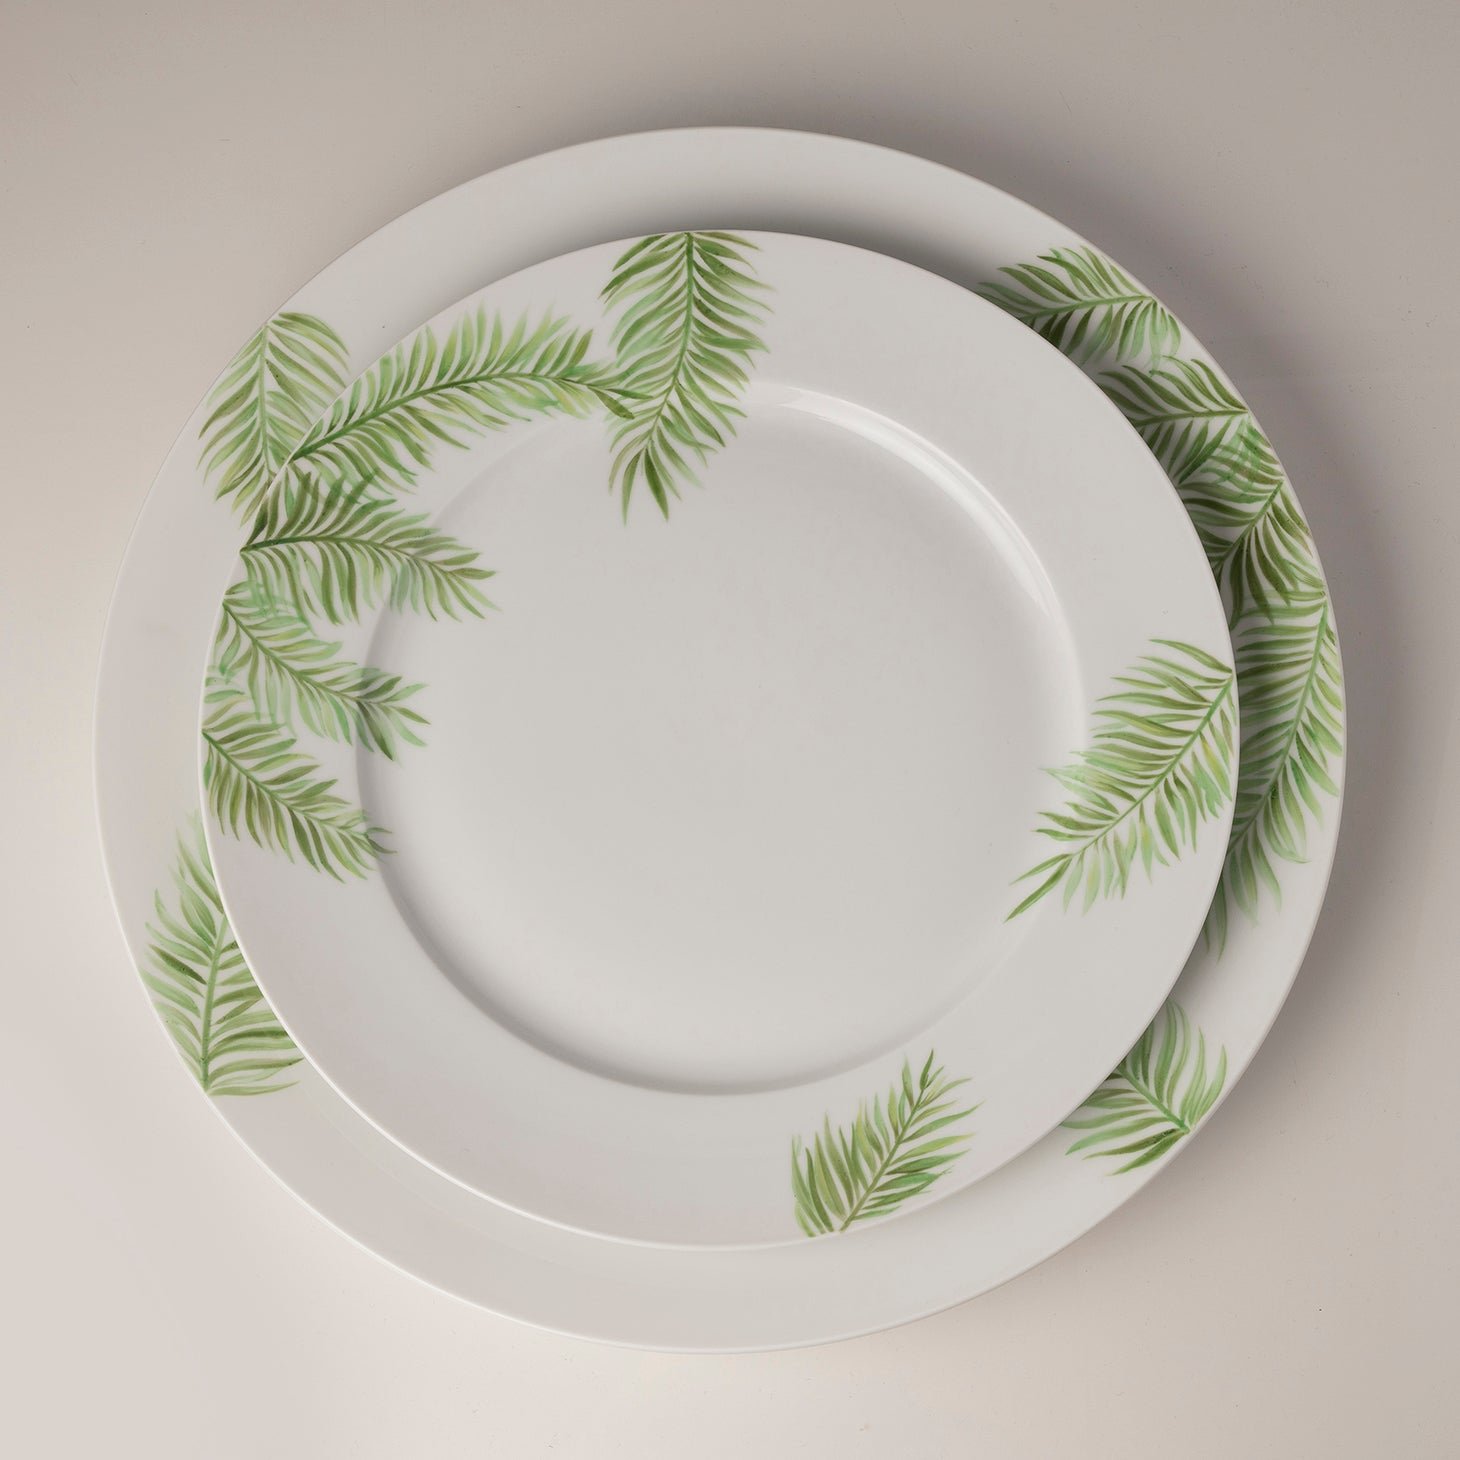 Palm Beach Two Dinner Plate Accessories Nymphenburg Designer Furniture Sku: 542-100-10284